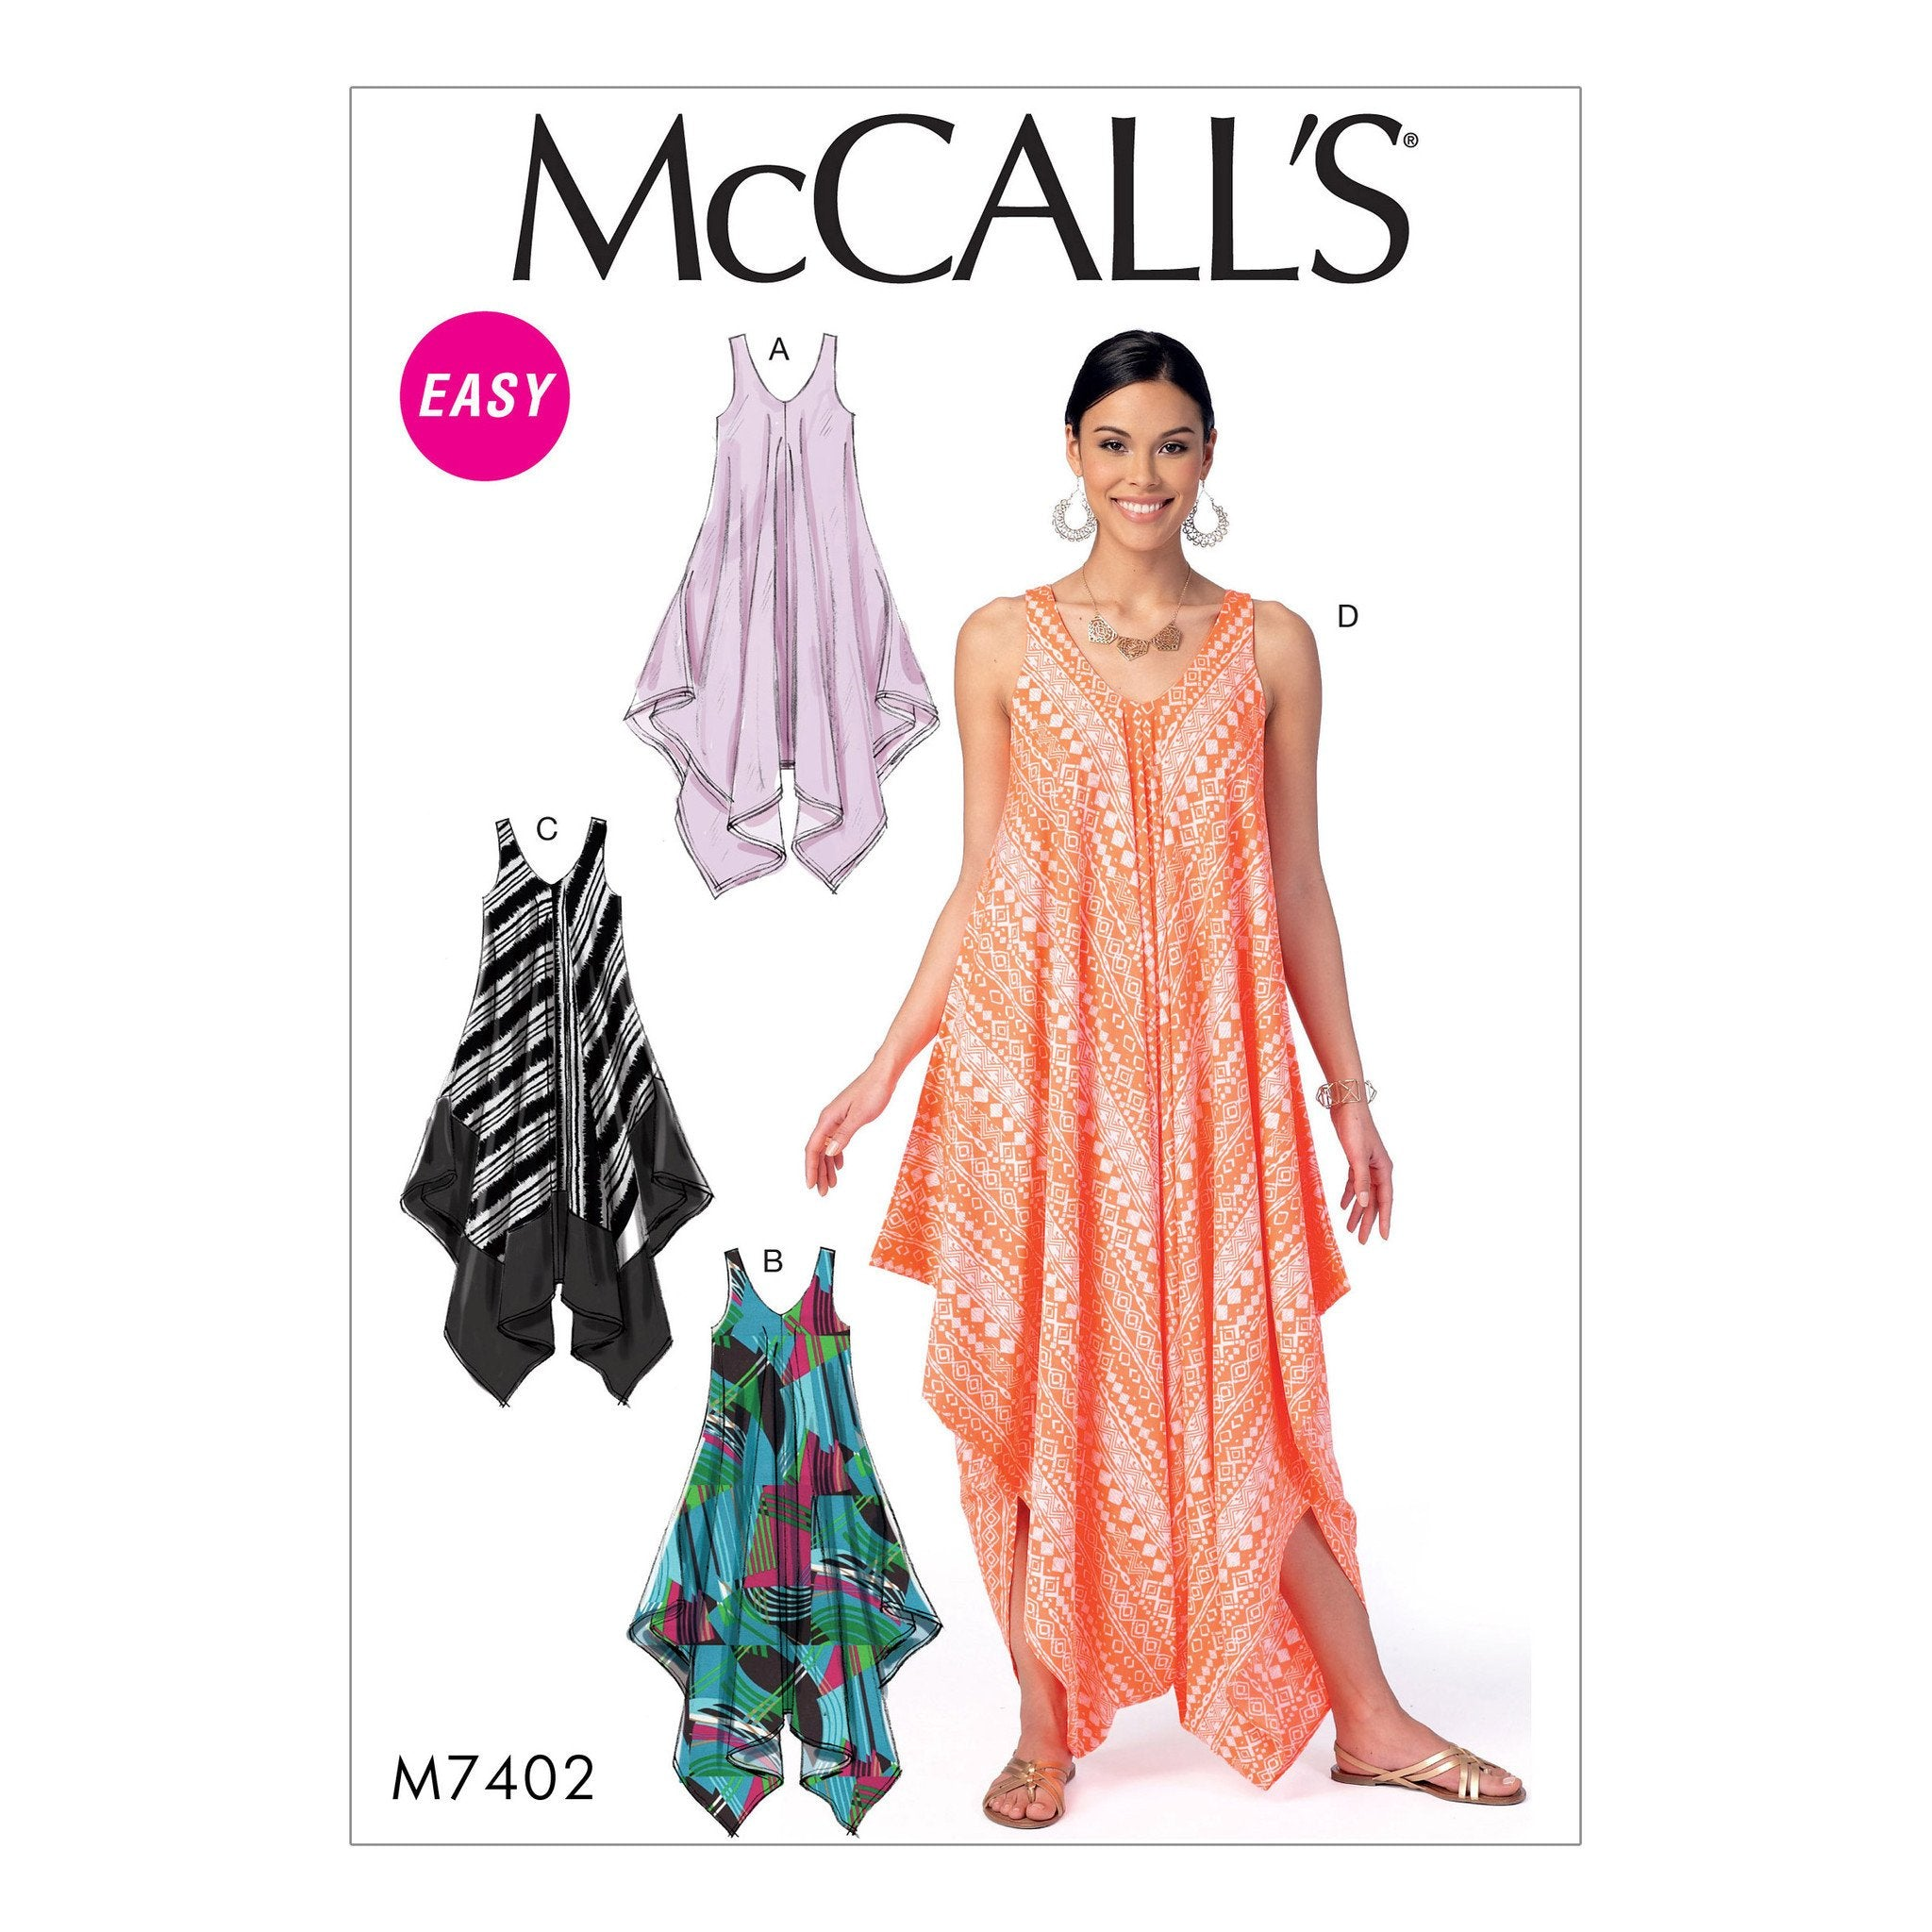 M7402 Dresses and Jumpsuit McCalls pattern